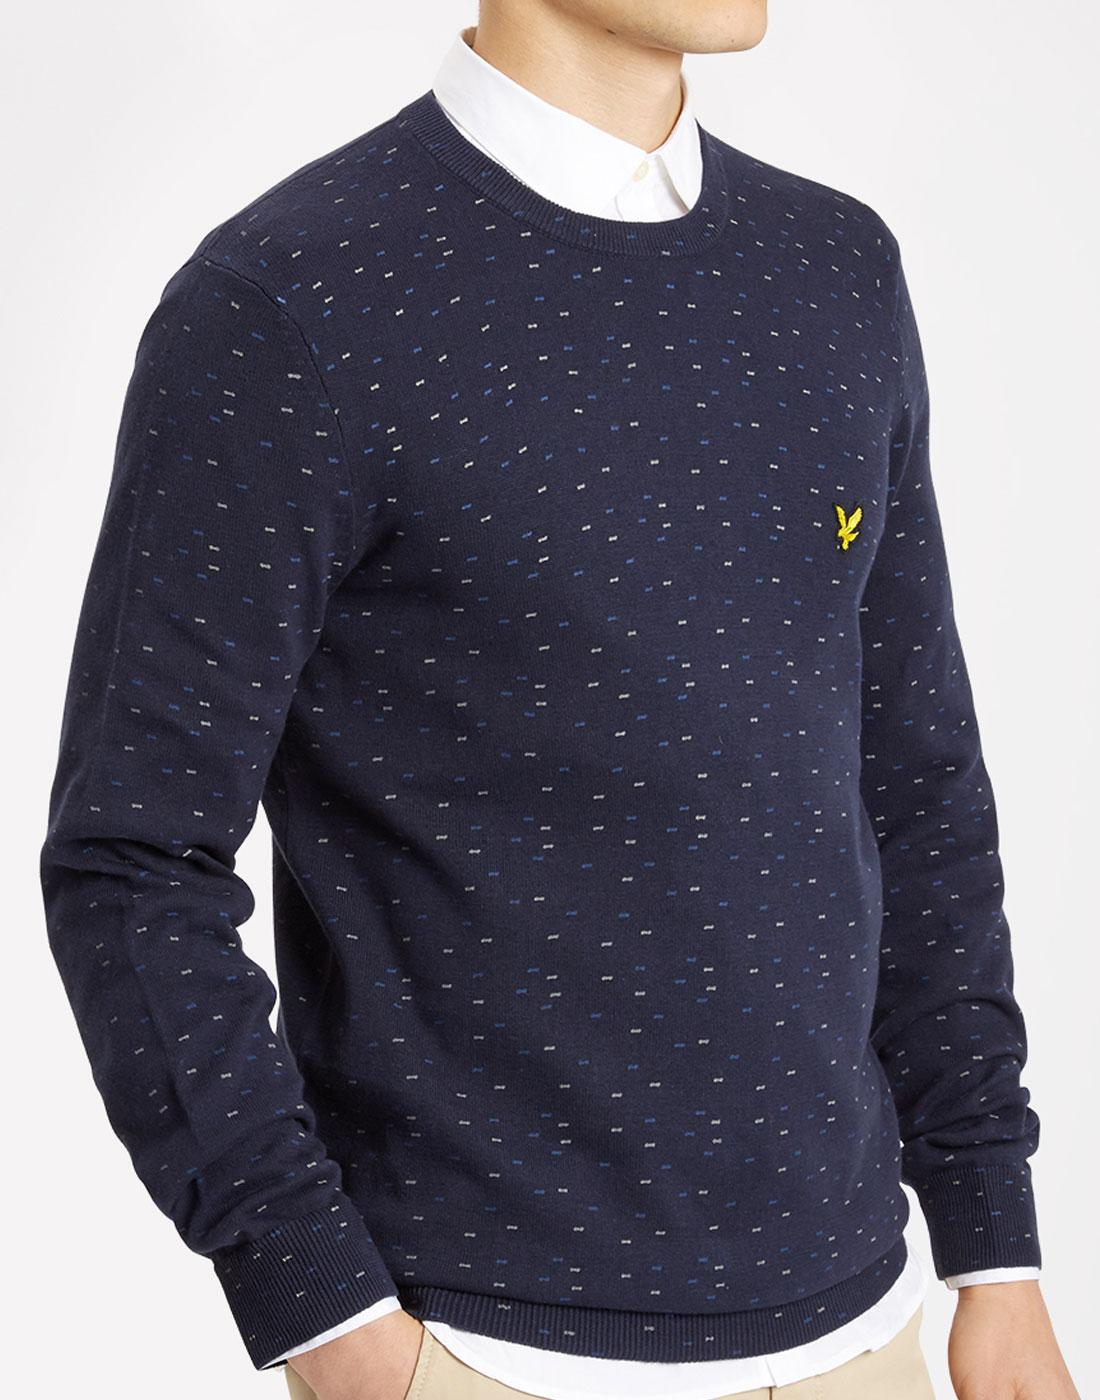 LYLE AND SCOTT Retro 60s Mod Fil Coupe Jumper NAVY